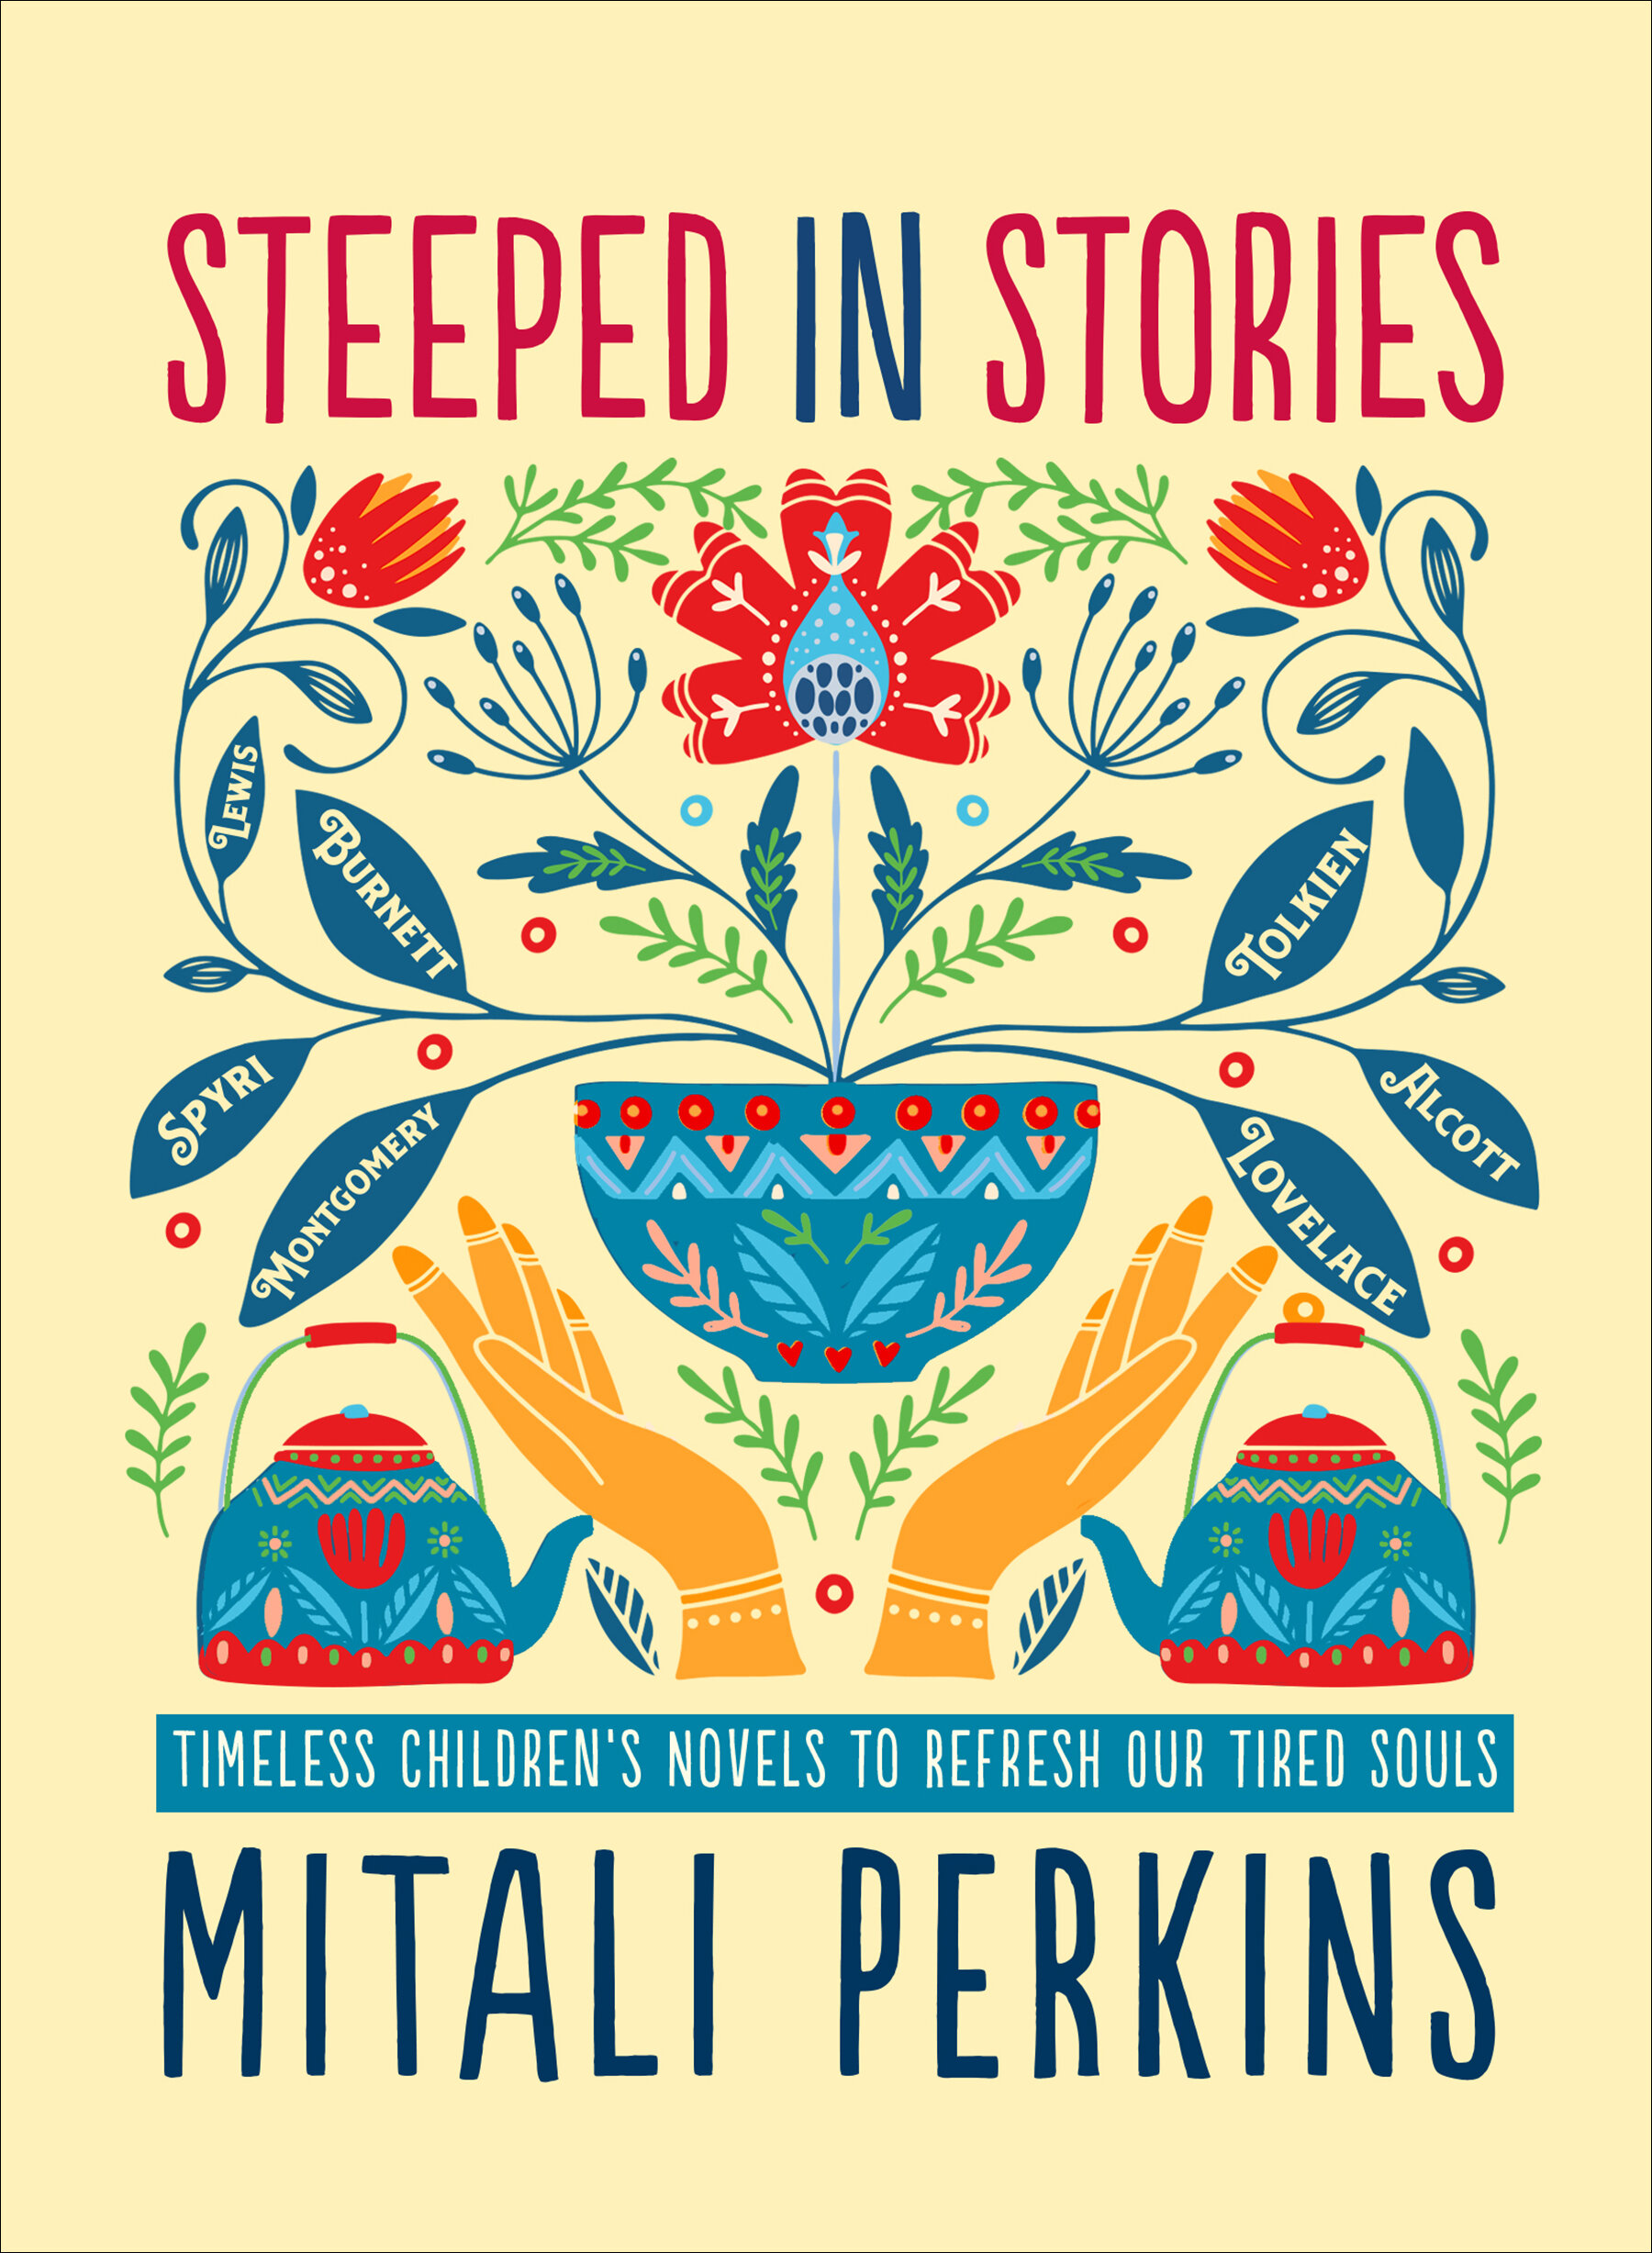 Steeped in Stories: Timeless Children's Novels to Refresh Our Tired Souls